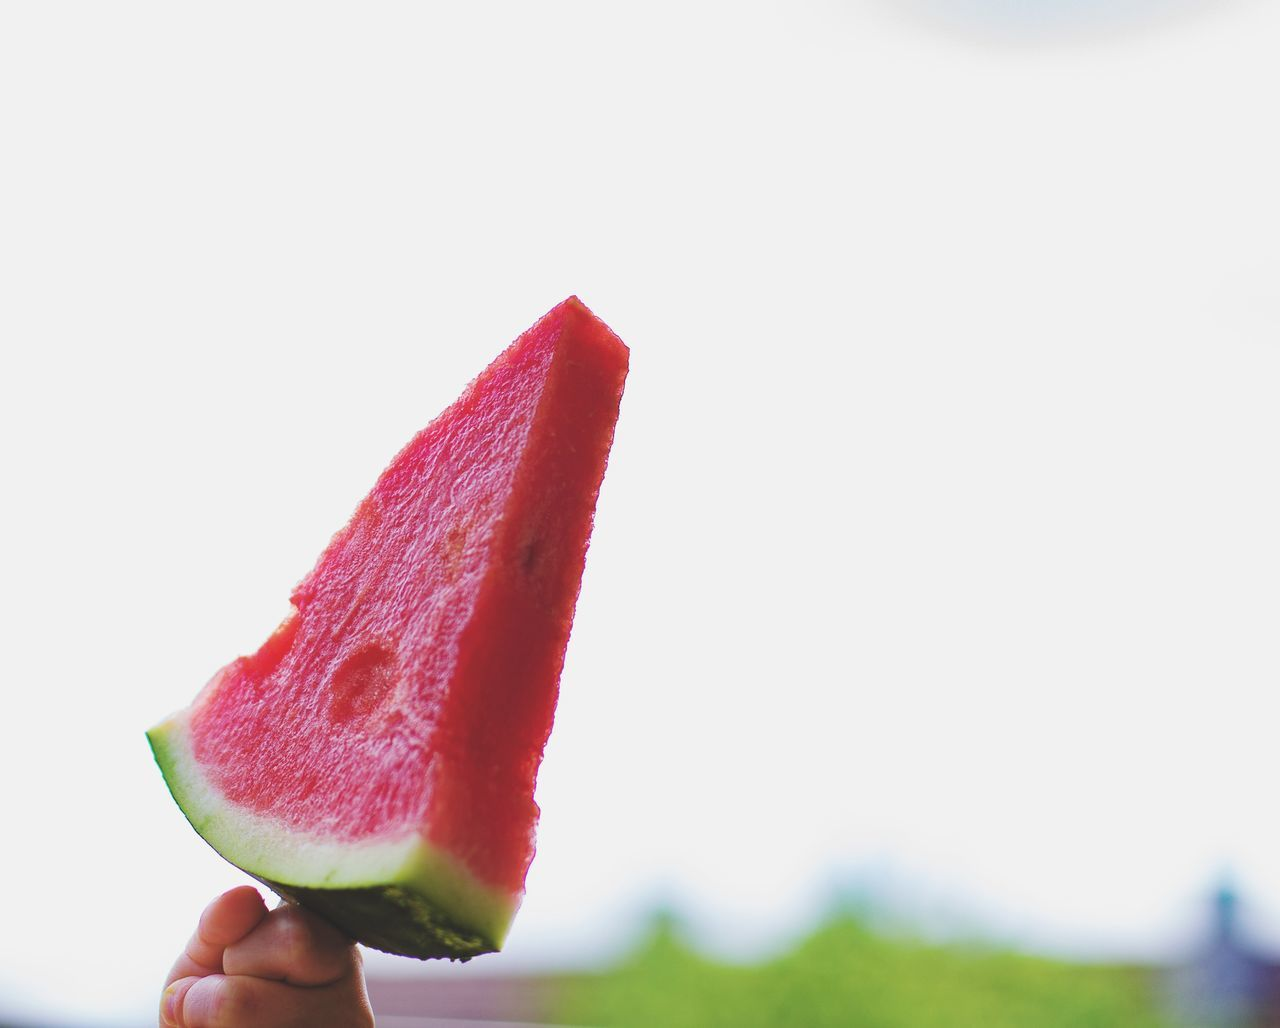 food and drink, holding, watermelon, freshness, slice, one person, copy space, food, fruit, human hand, real people, healthy eating, flavored ice, clear sky, lifestyles, refreshment, red, healthy lifestyle, frozen food, human body part, close-up, women, outdoors, ice cream, day, white background, ready-to-eat, people